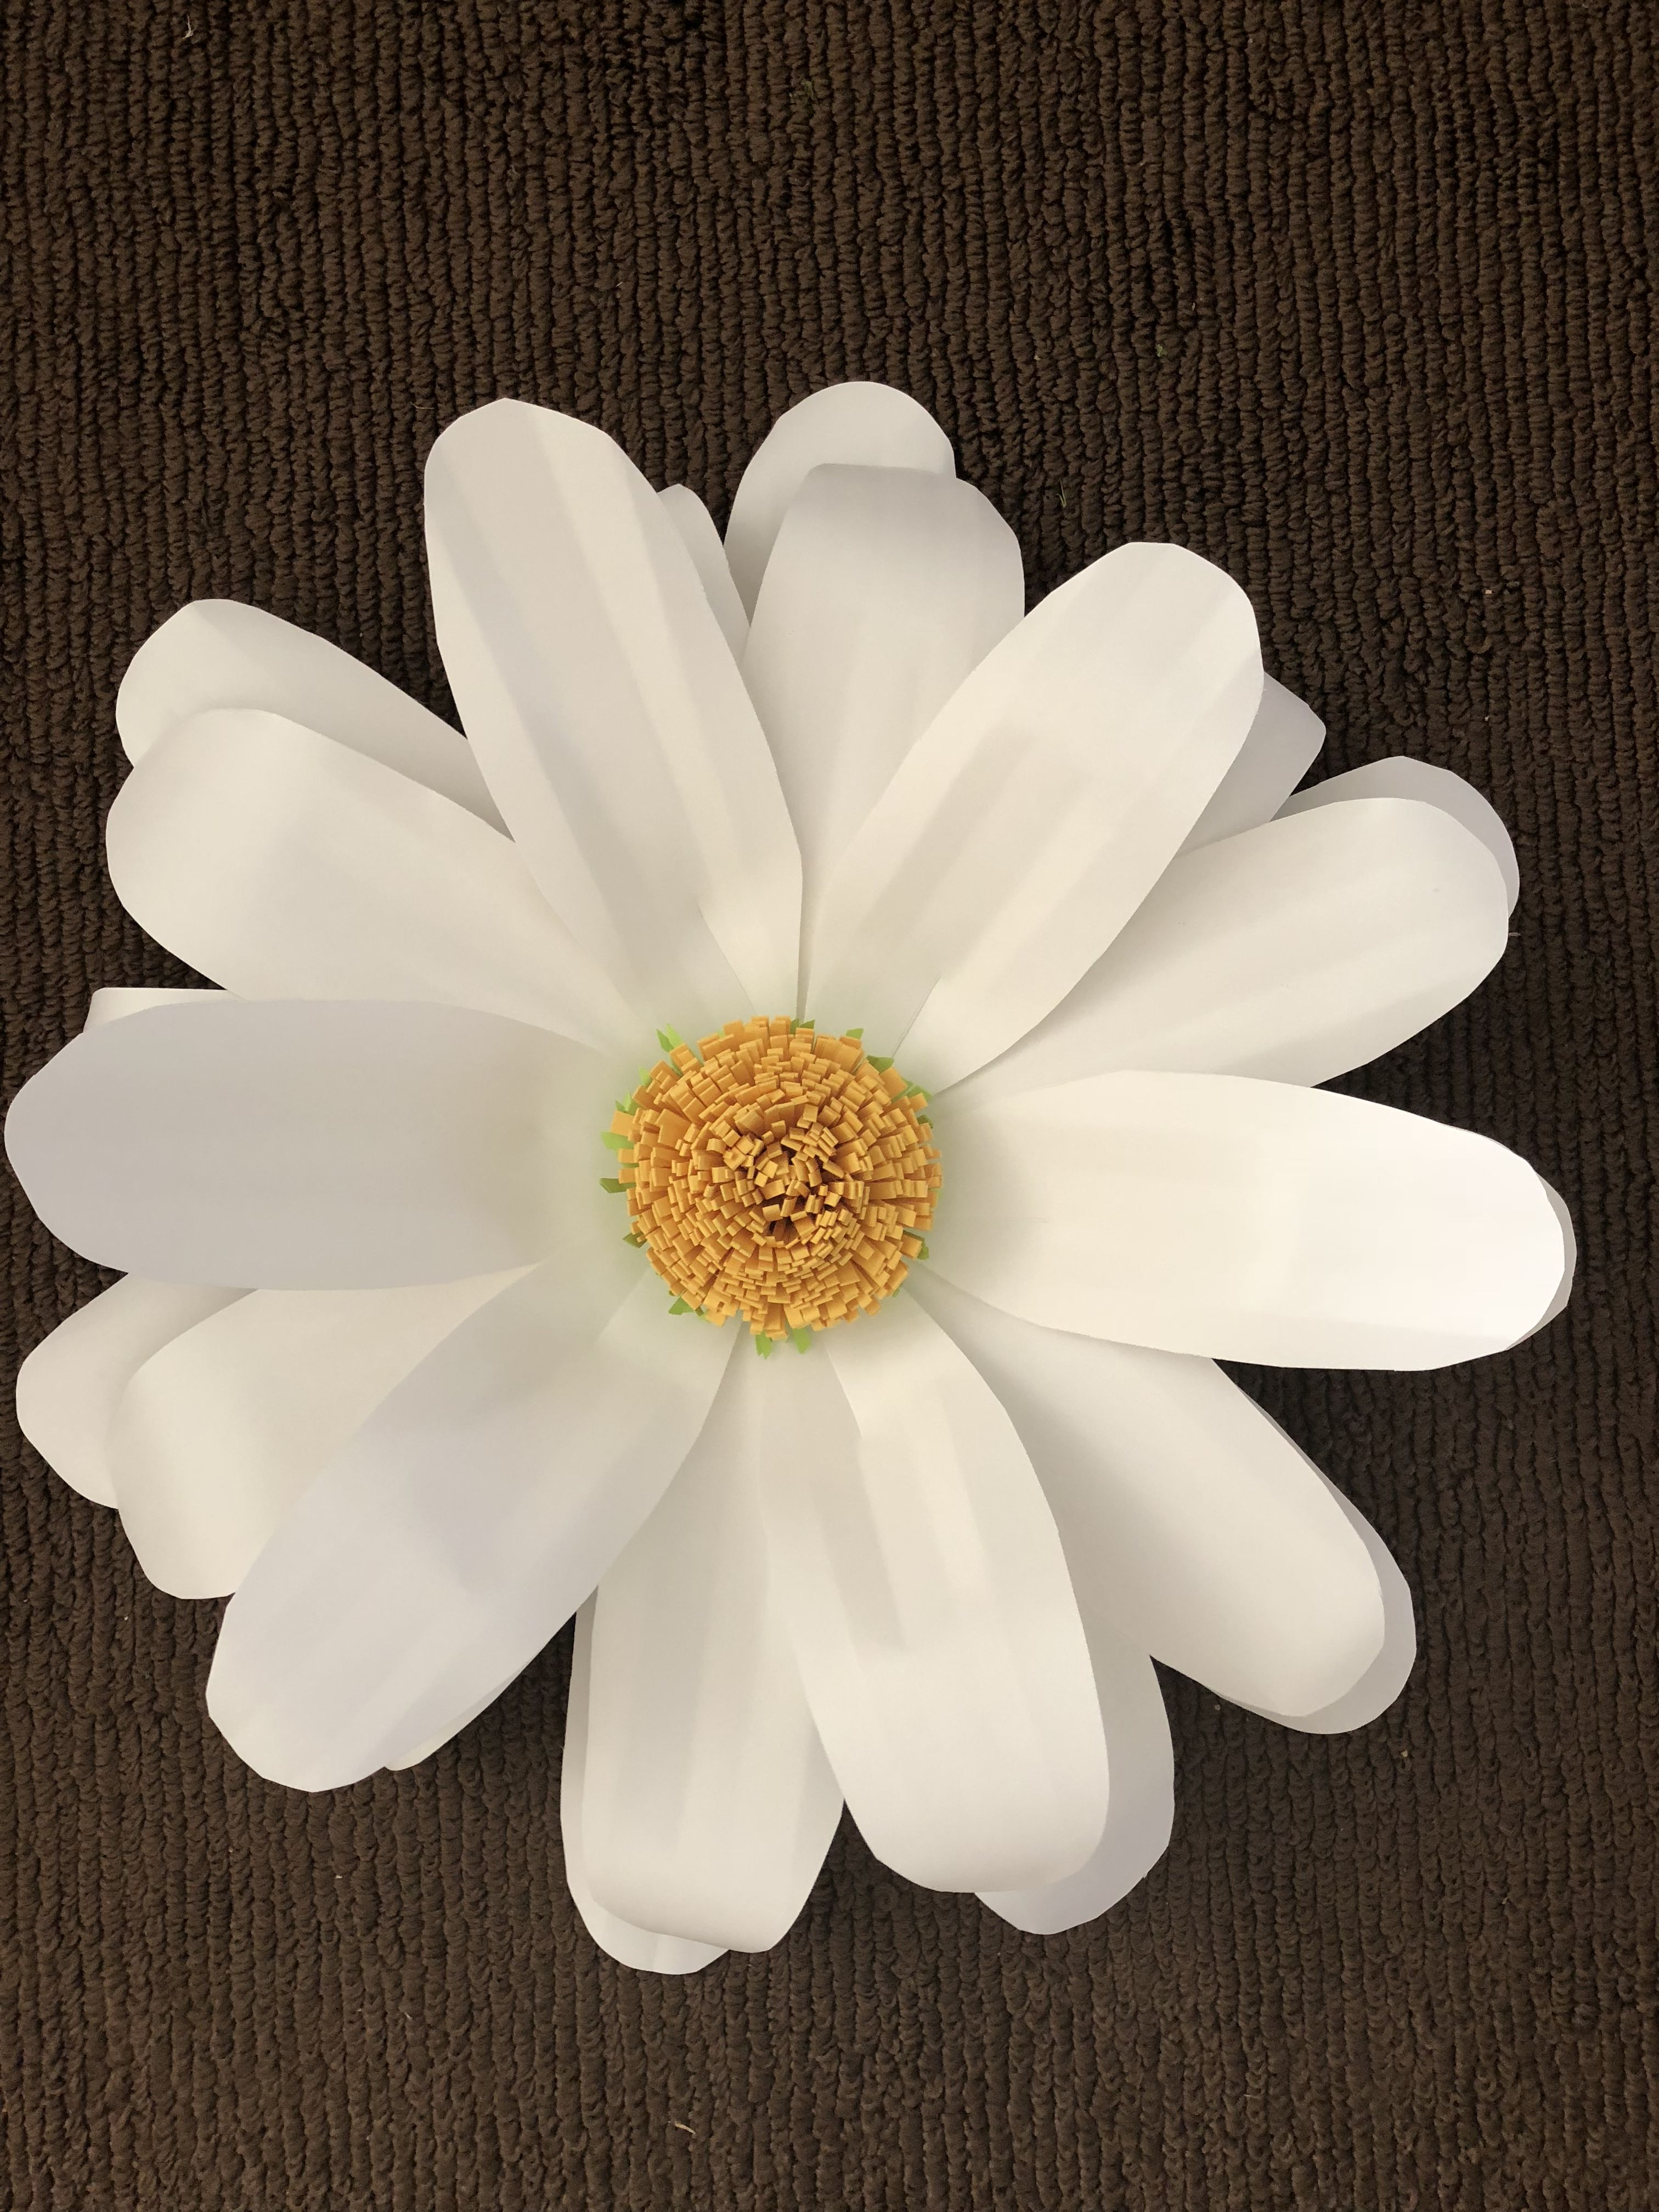 Giant Daisy Paper Flower I Tried To Use A Real Flower As An